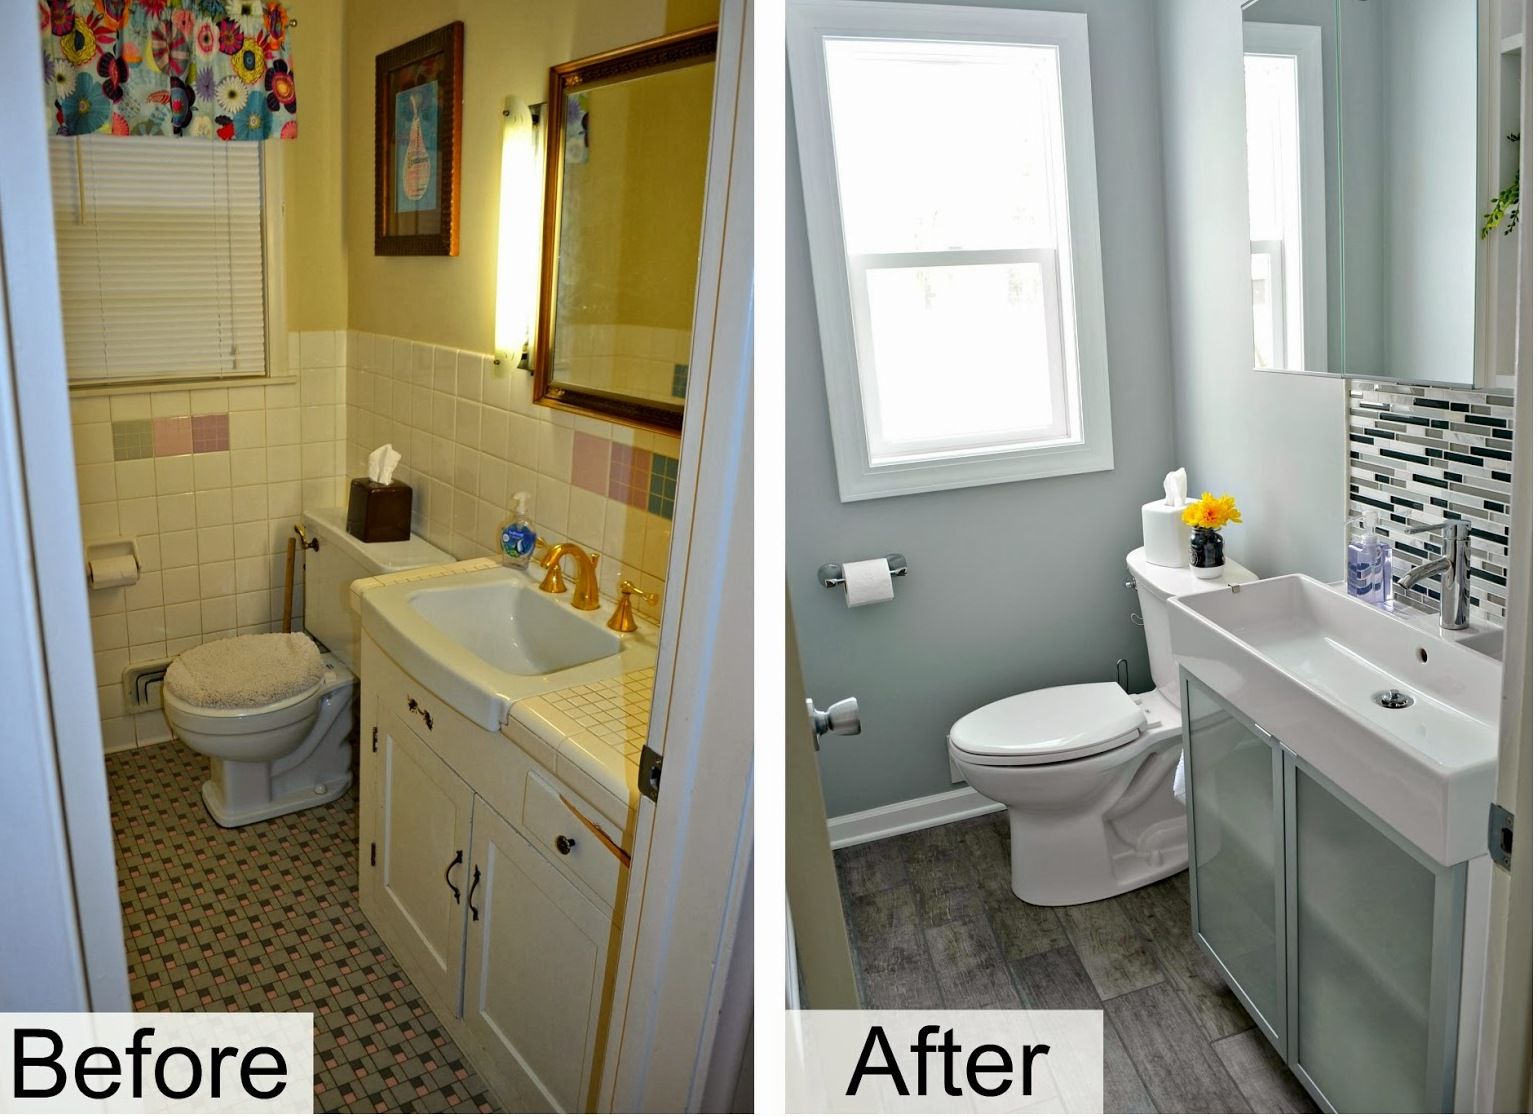 Diy Bathroom Remodel Also Shower Stall Remodel Also Diy Bathroom Projects Also Bathroom Remodel Ideas Small Space Diy Bathroom Remodel Simple Easy And Quick Inspiration Home Magazine